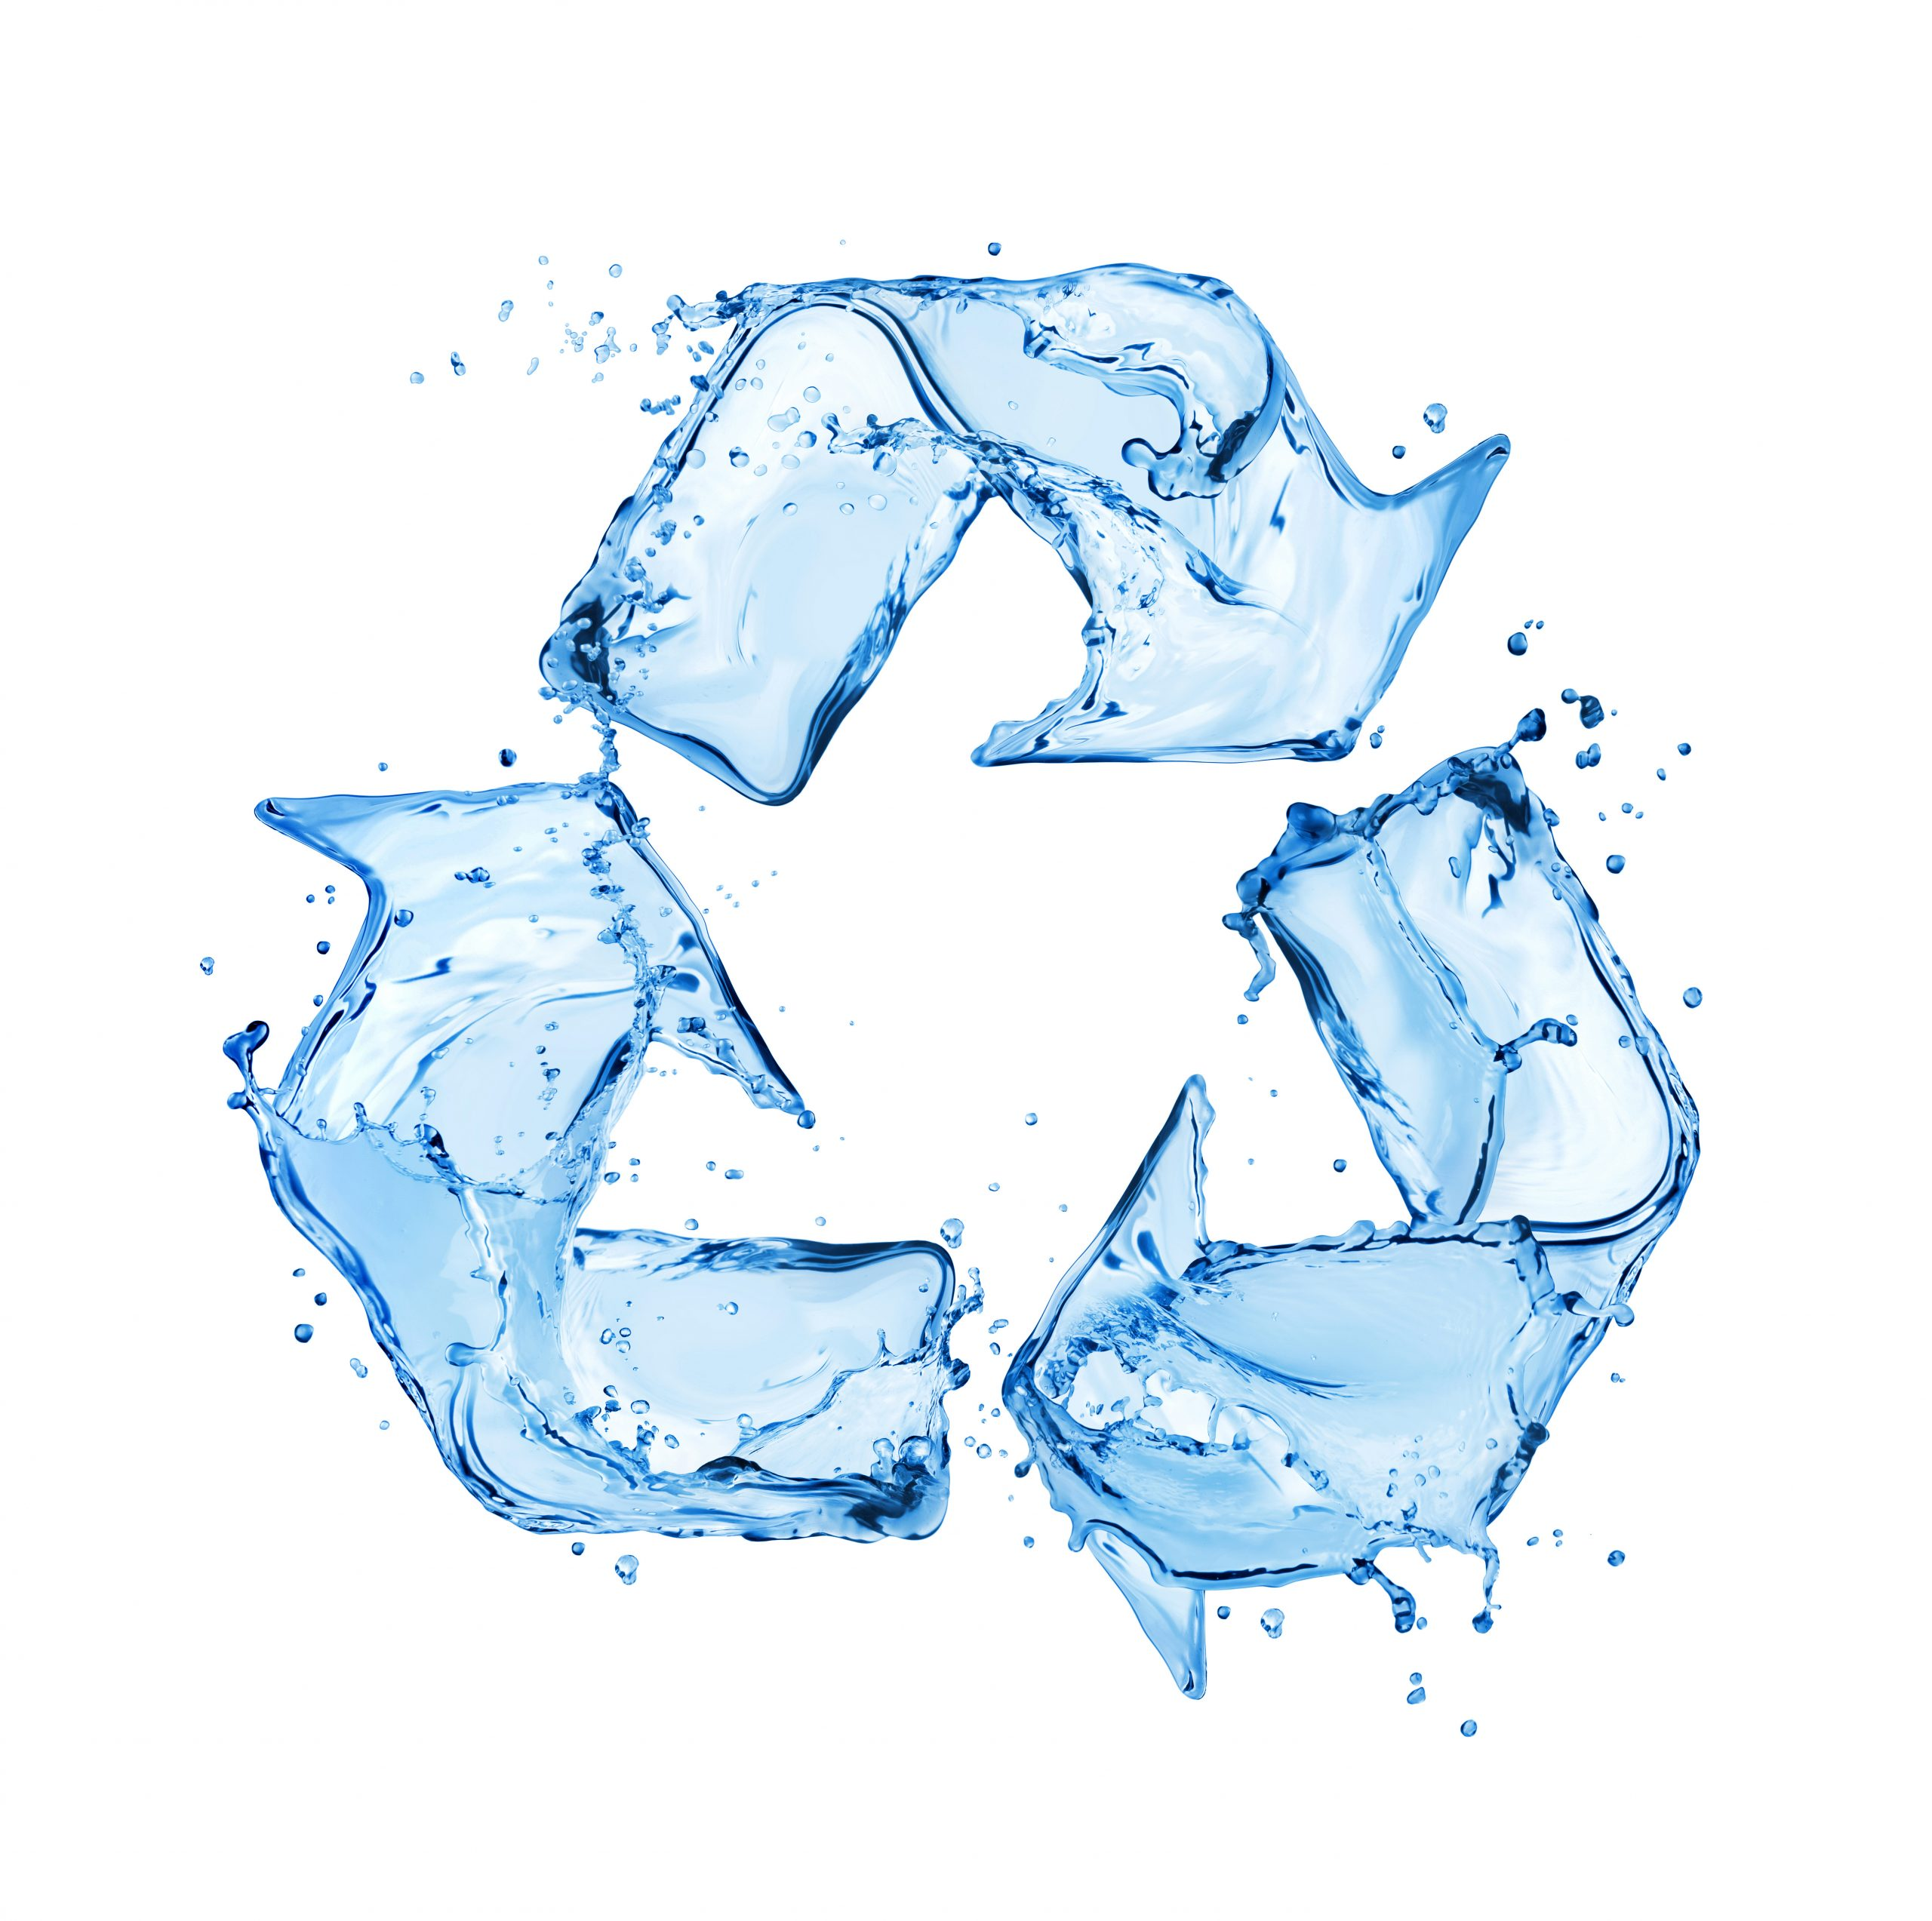 Recycling sign made of water splashes on white background